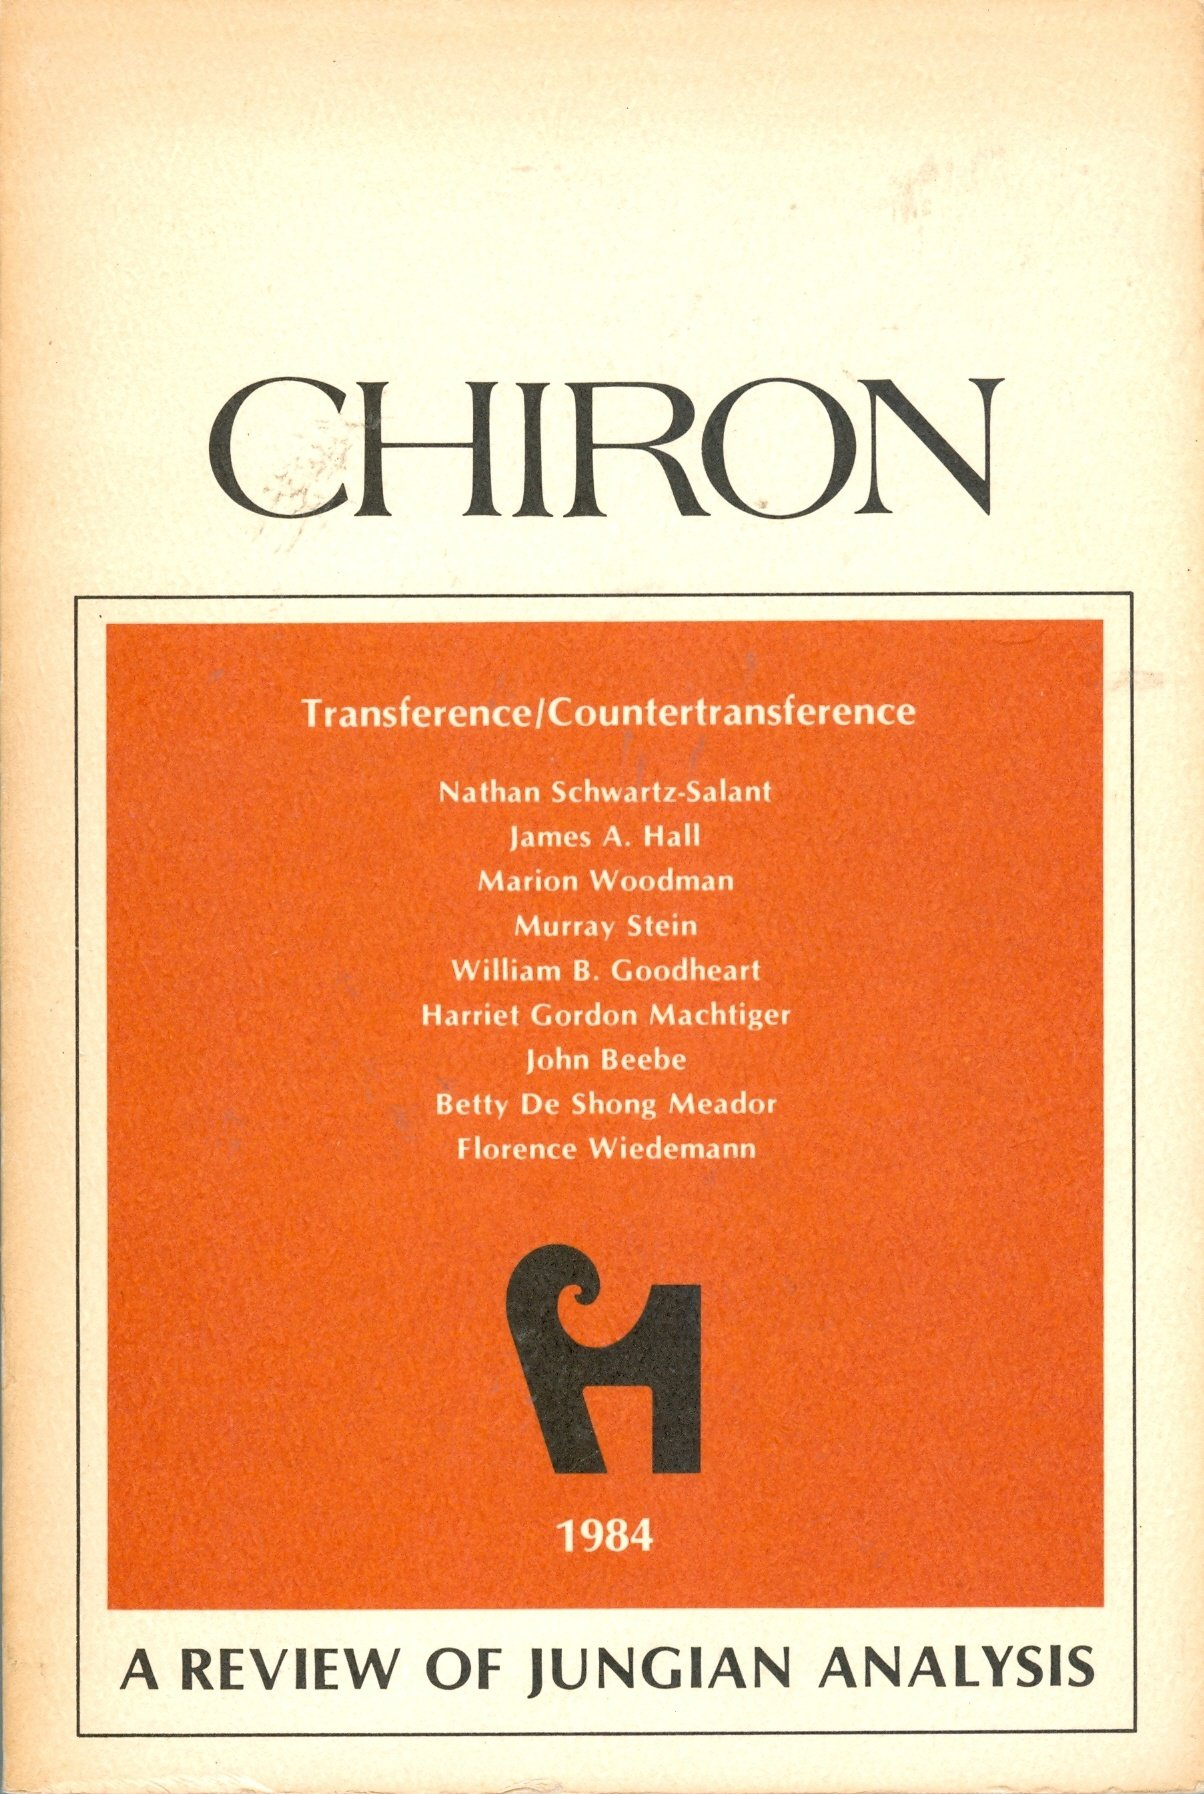 Chiron: Transference/Countertransference (A Review of Jungian Analysis), James A. Hall; Marion Woodman; Murray Stein; William B. Goodheart; Harriet Gordon Machtiger; John Beebe; Betty De Shong Meador; Florence L. Wiedemann